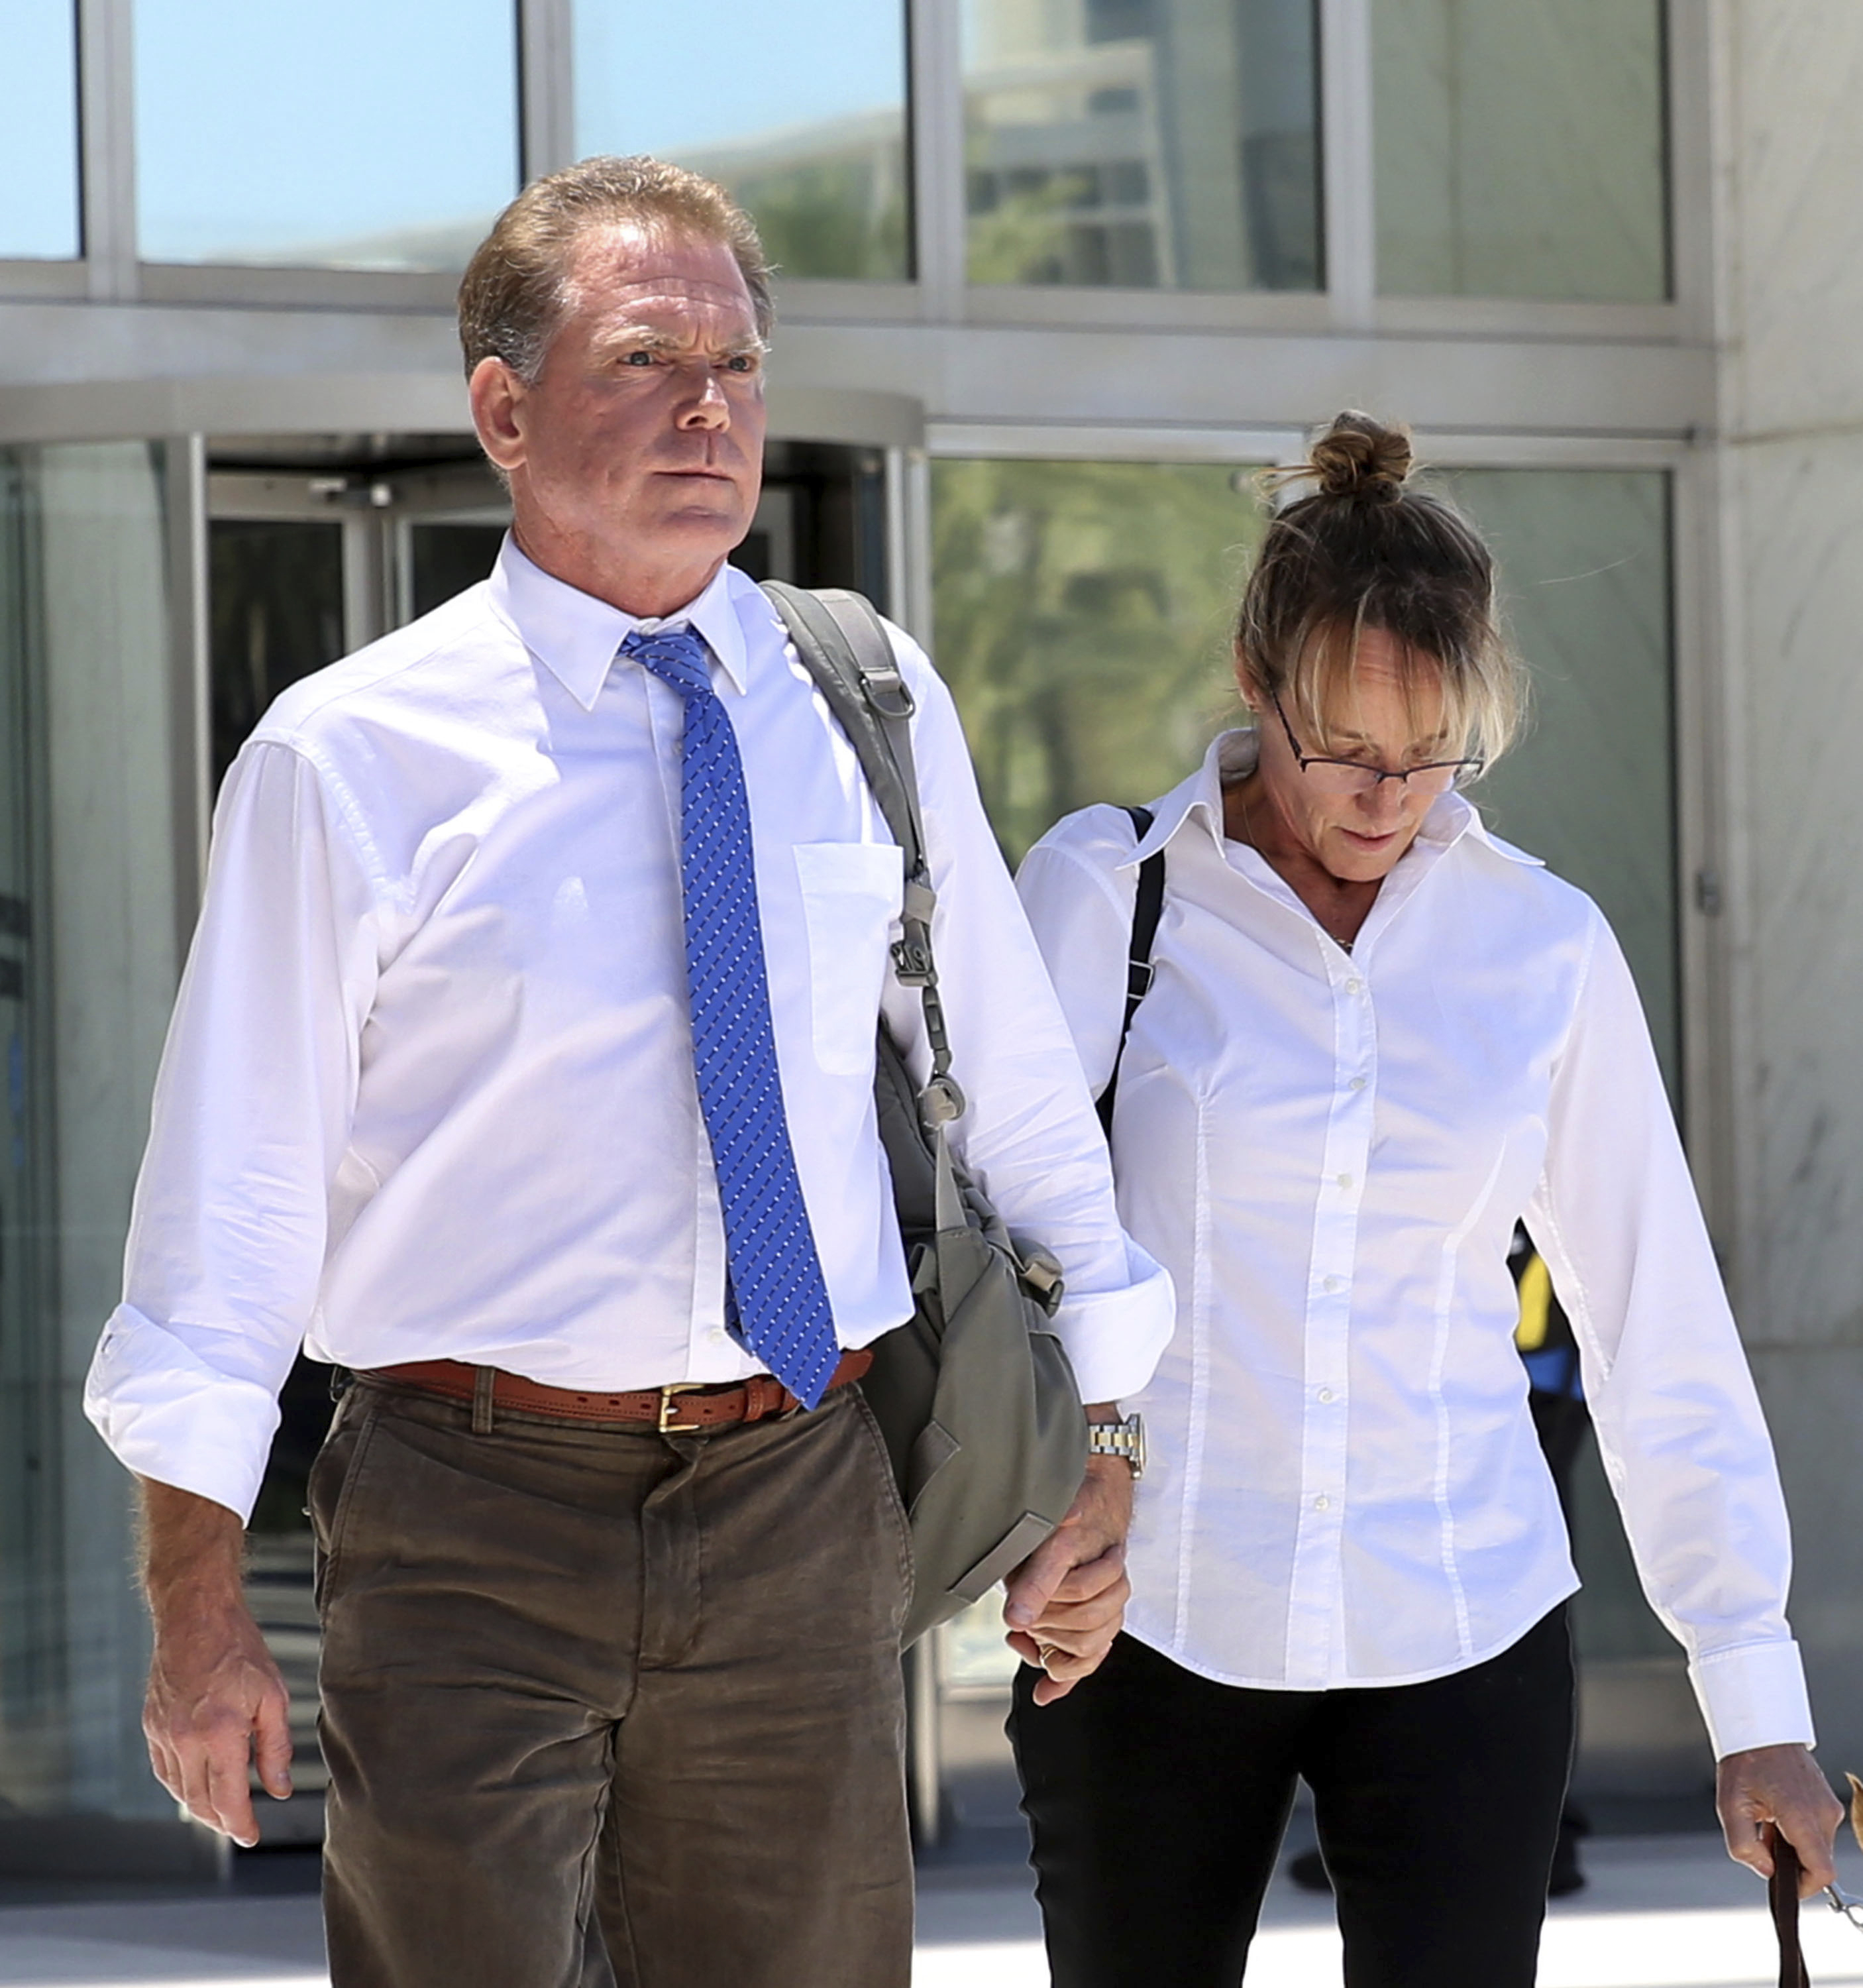 In this July 10, 2019, file photo, Douglas Haig, left, the Arizona man who sold ammunition to the Route 91 Harvest festival gunman, and his wife, Dori, leave the Lloyd George Federal Courthouse in Las Vegas.